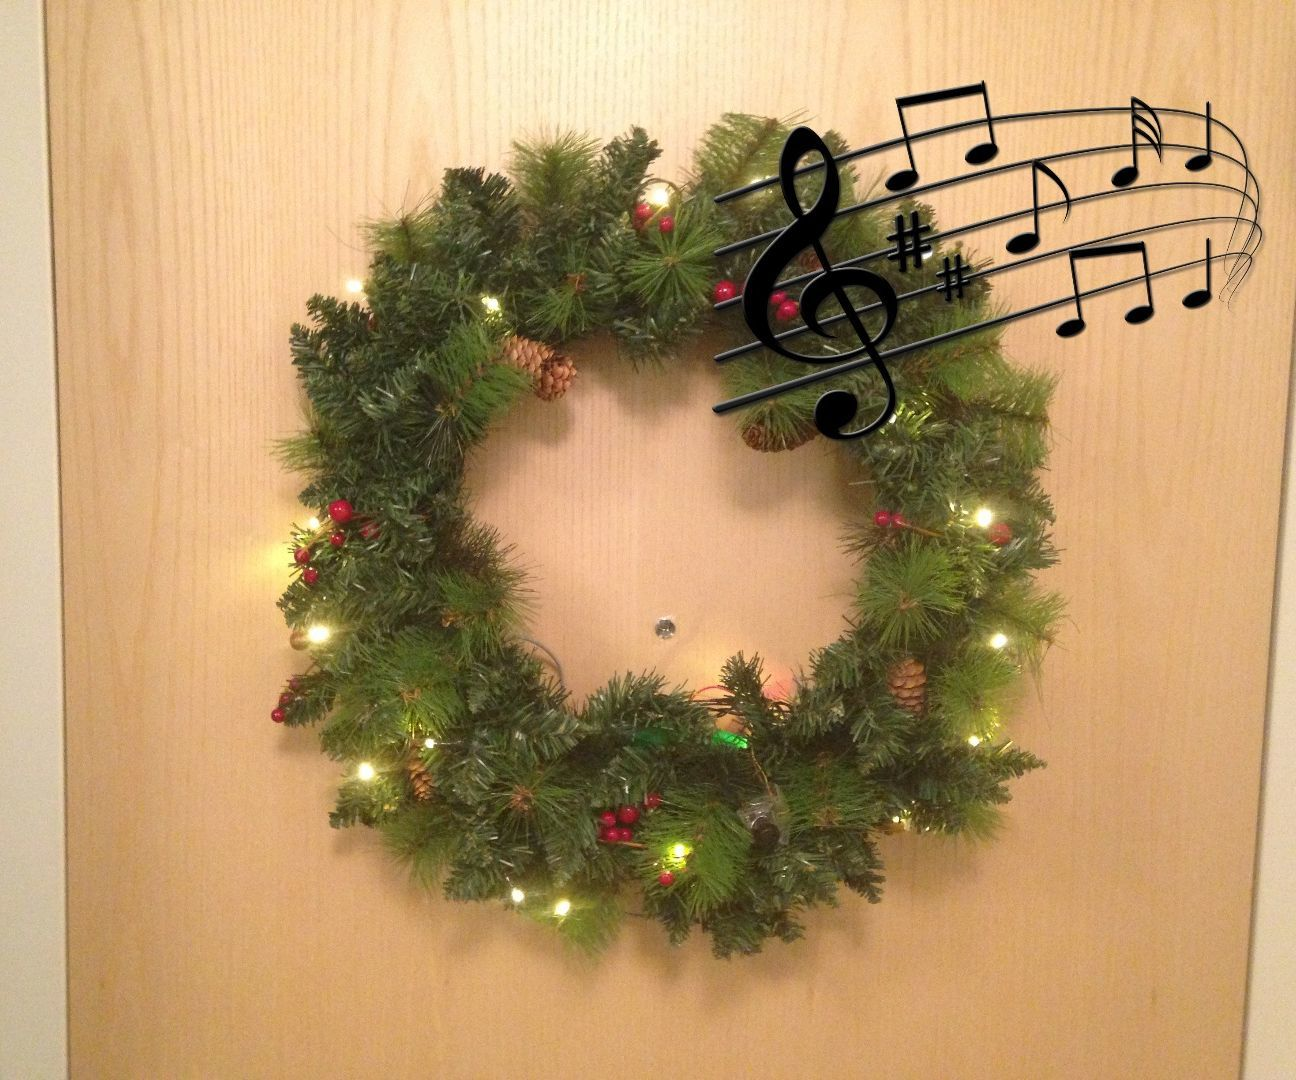 Singing Holiday Wreath